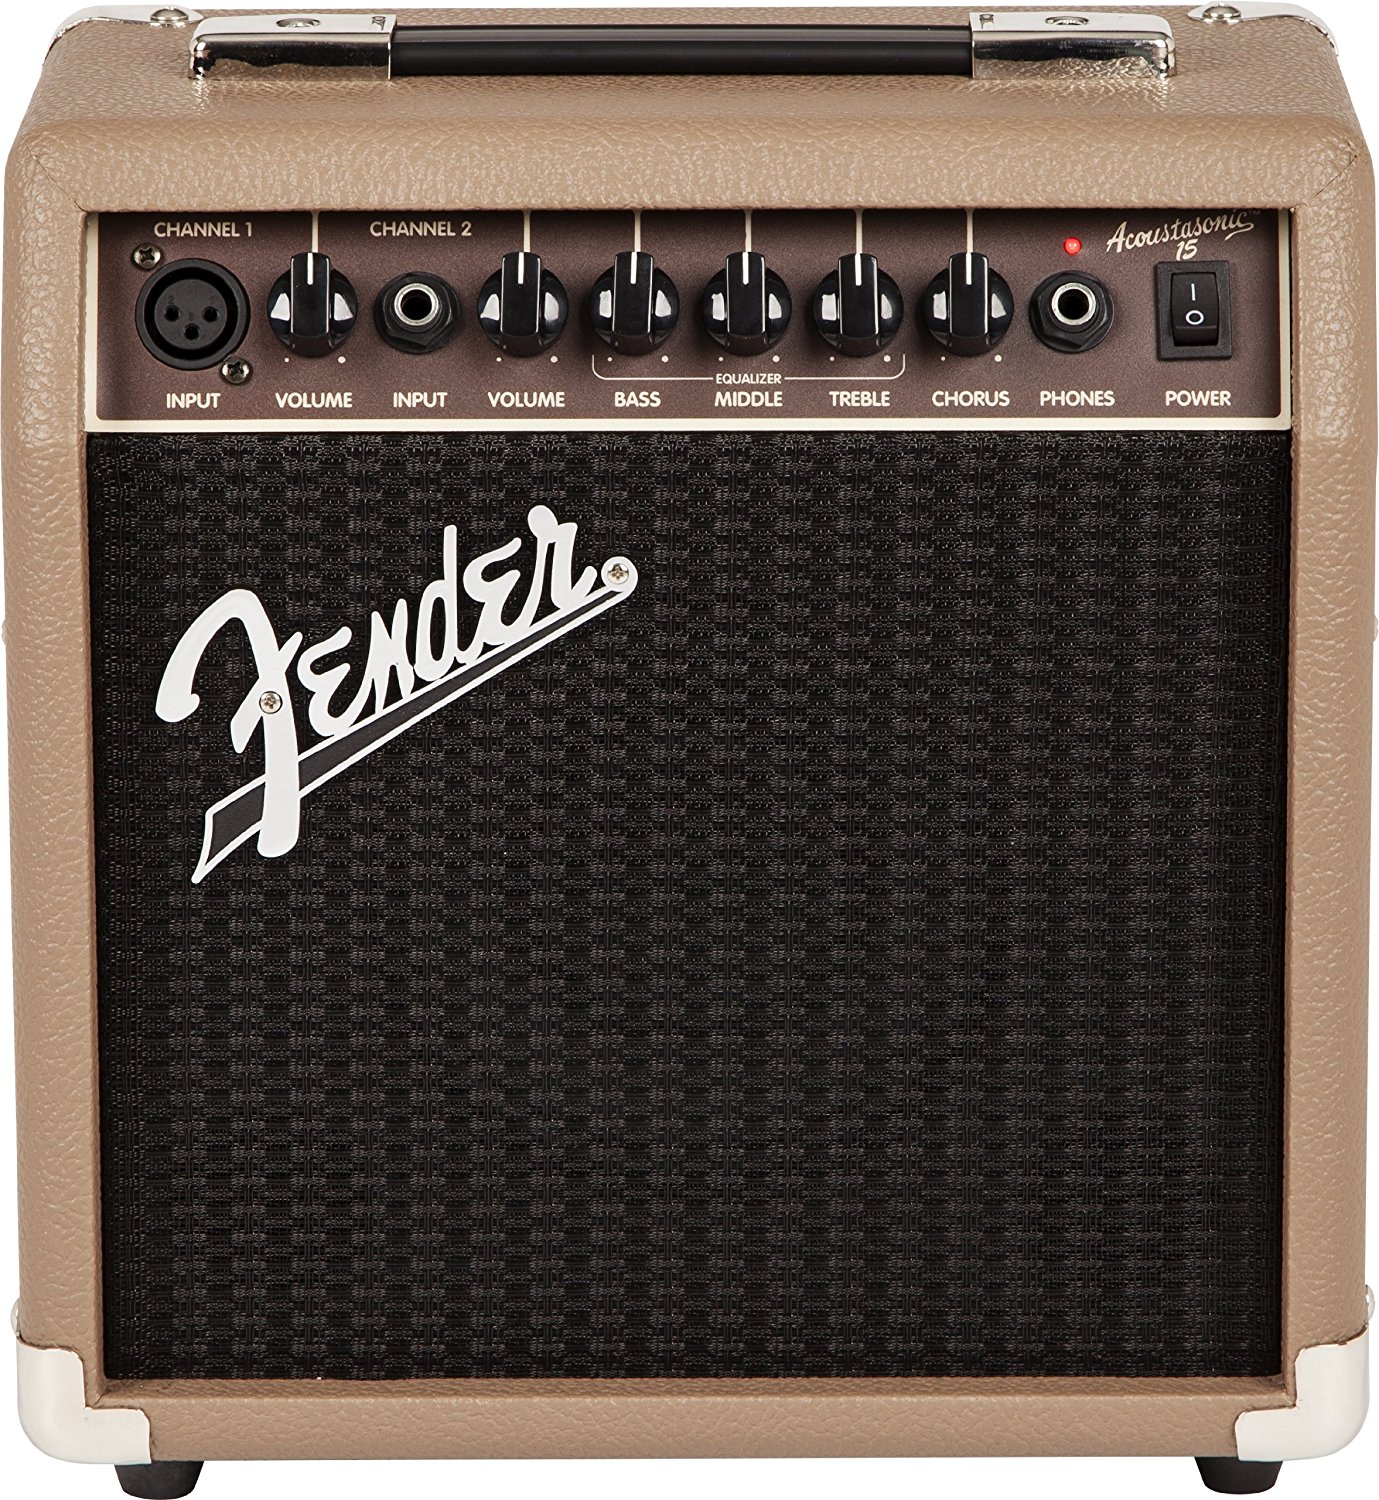 Fender Acoustasonic™ 15 Guitar Amplifier